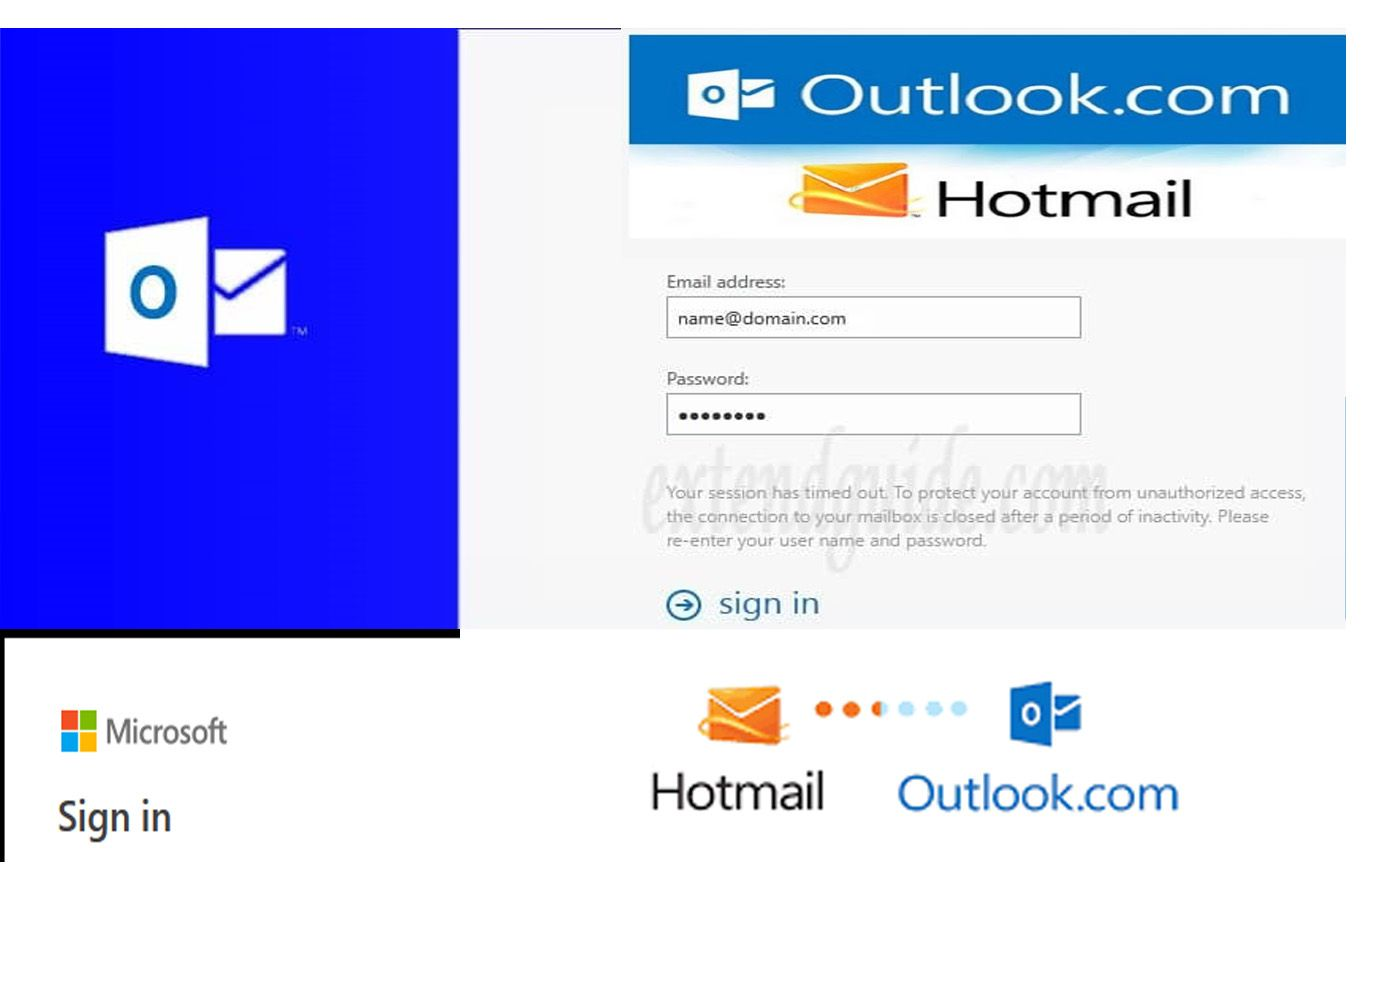 Hotmail Email Sign in in 2020 | Email sign, Hotmail sign in, Signs